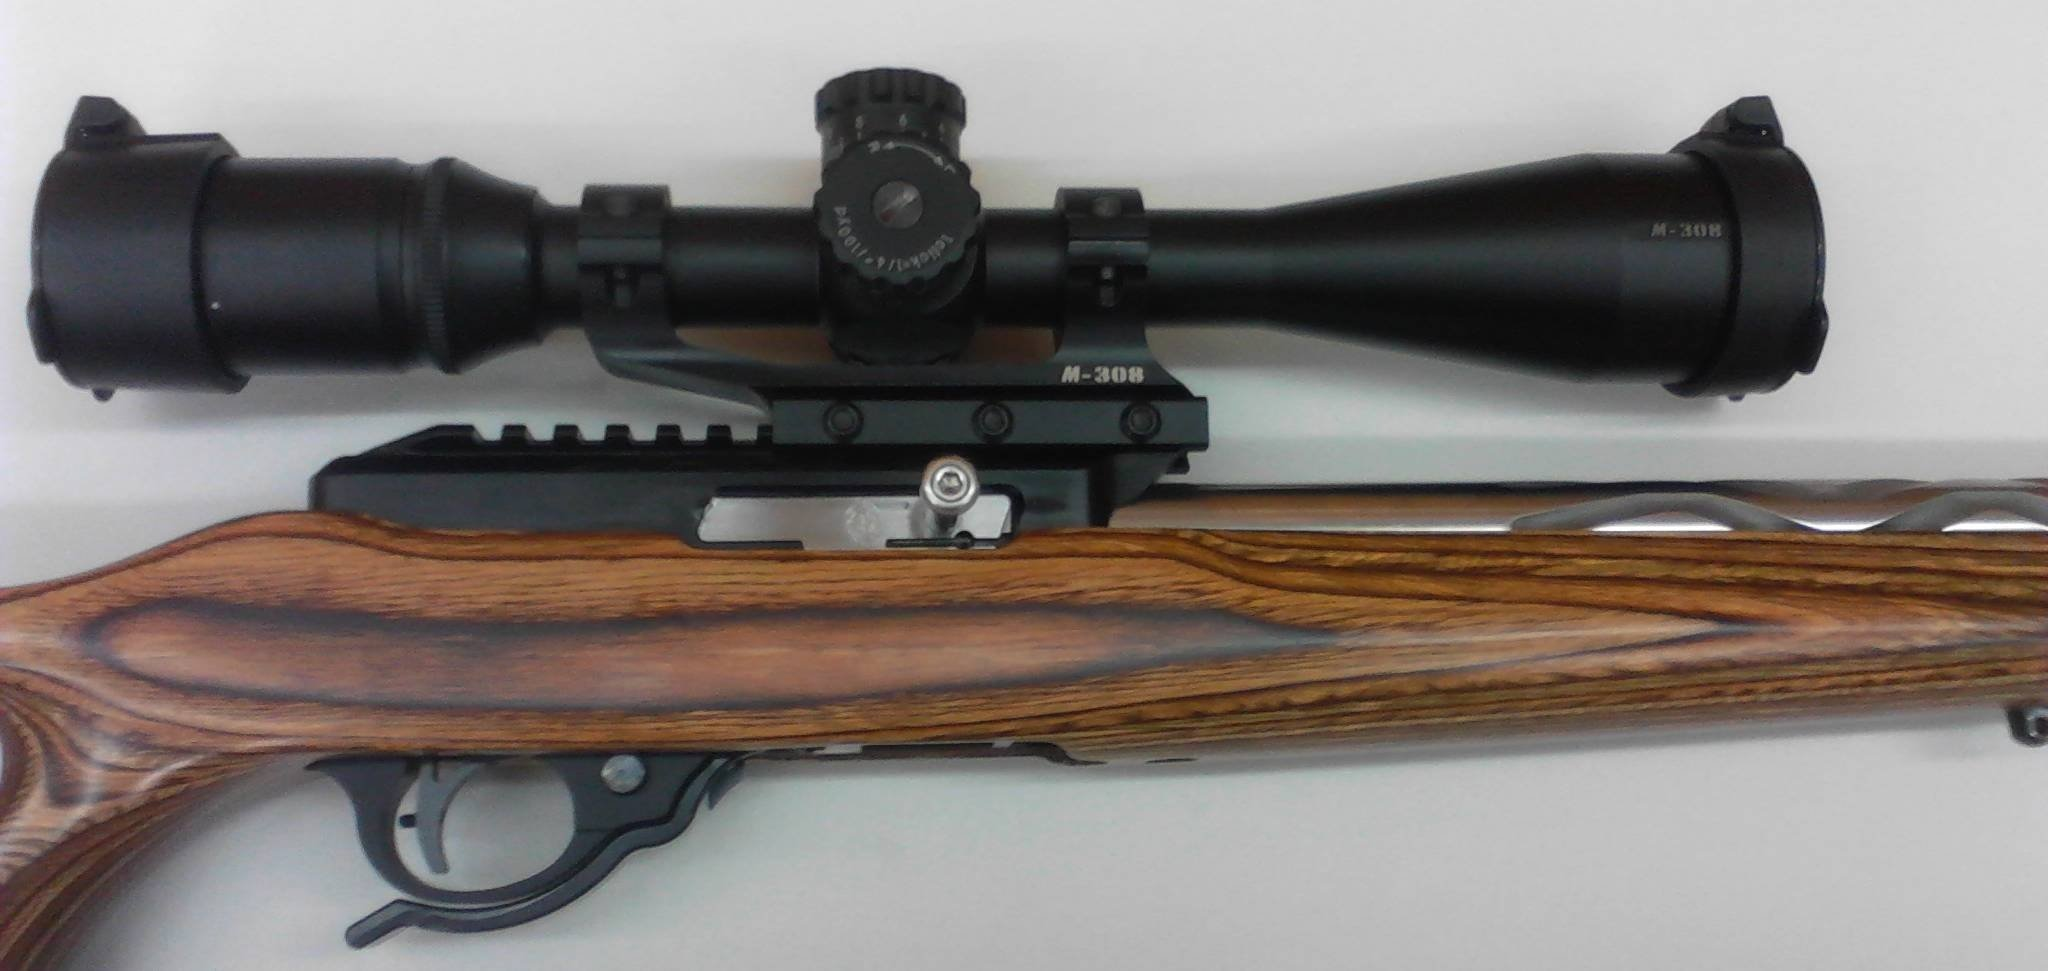 A custom ruger 10/22 with tactical solutions receiver, and Volquartsen snake fluted barrel